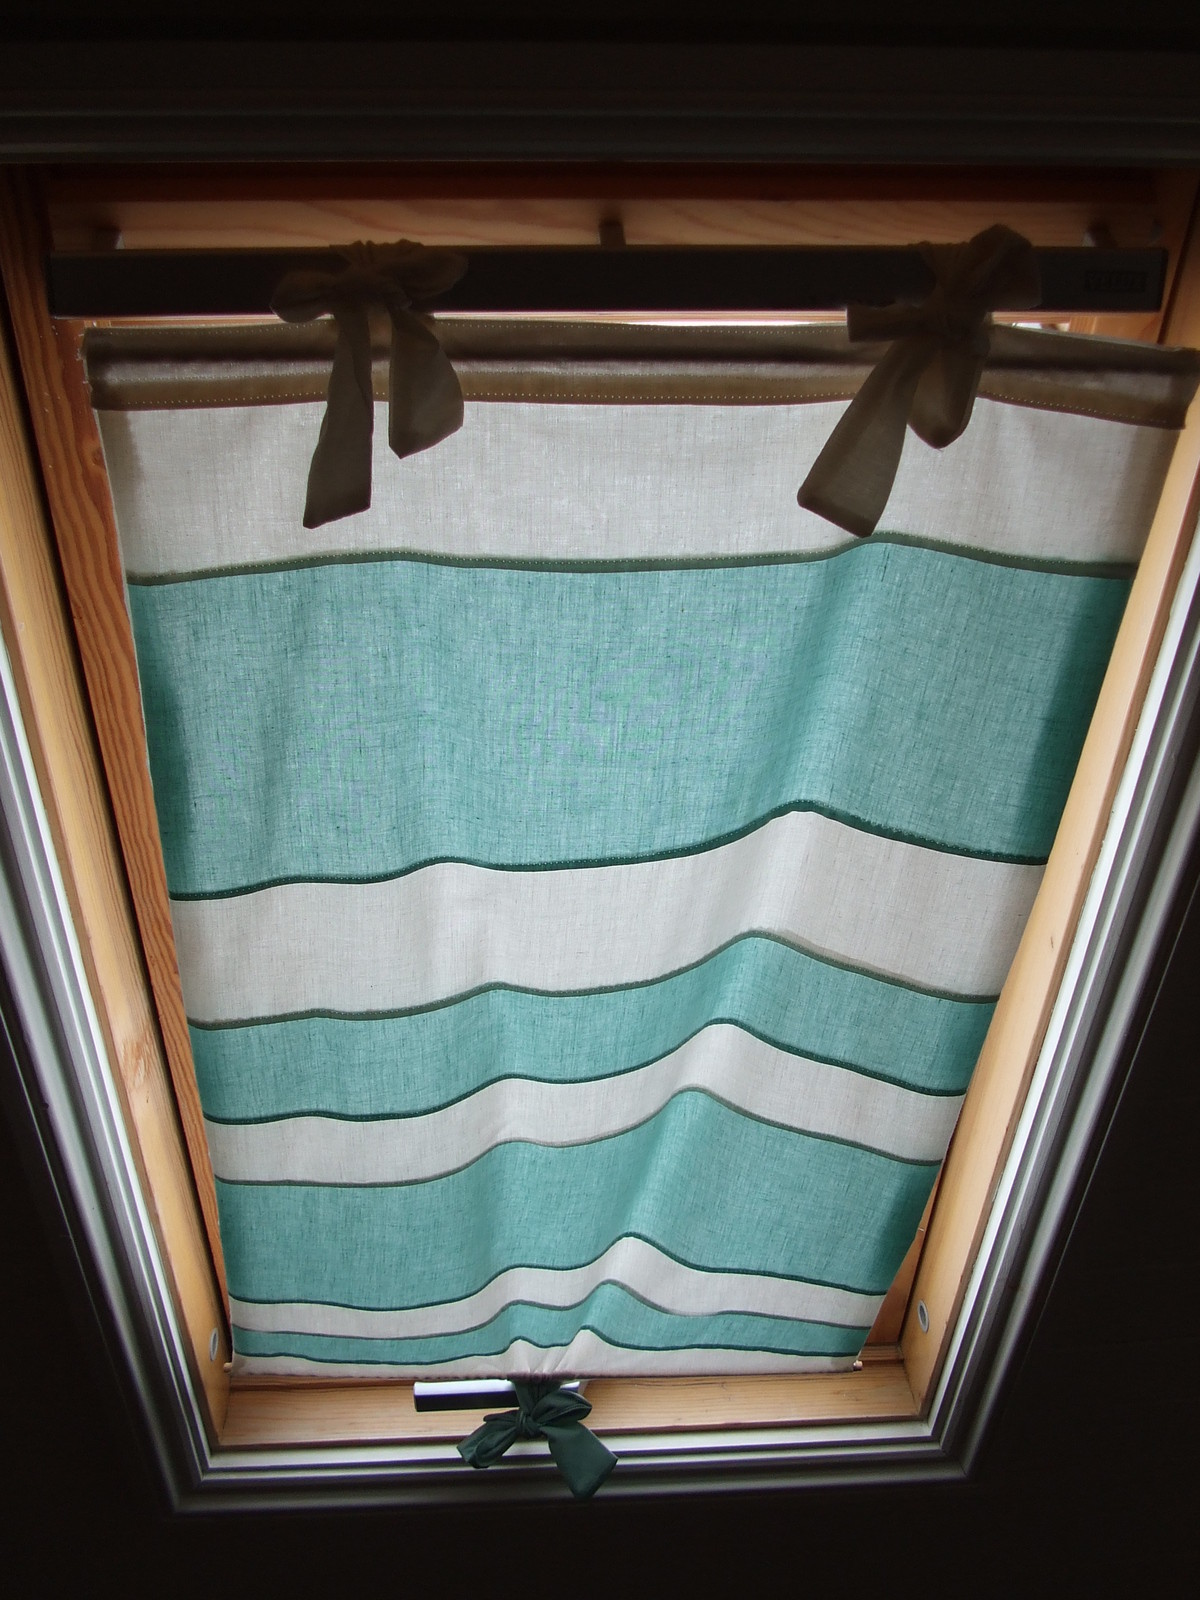 Skylight Blind  How To Make A CurtainBlinds  Sewing on